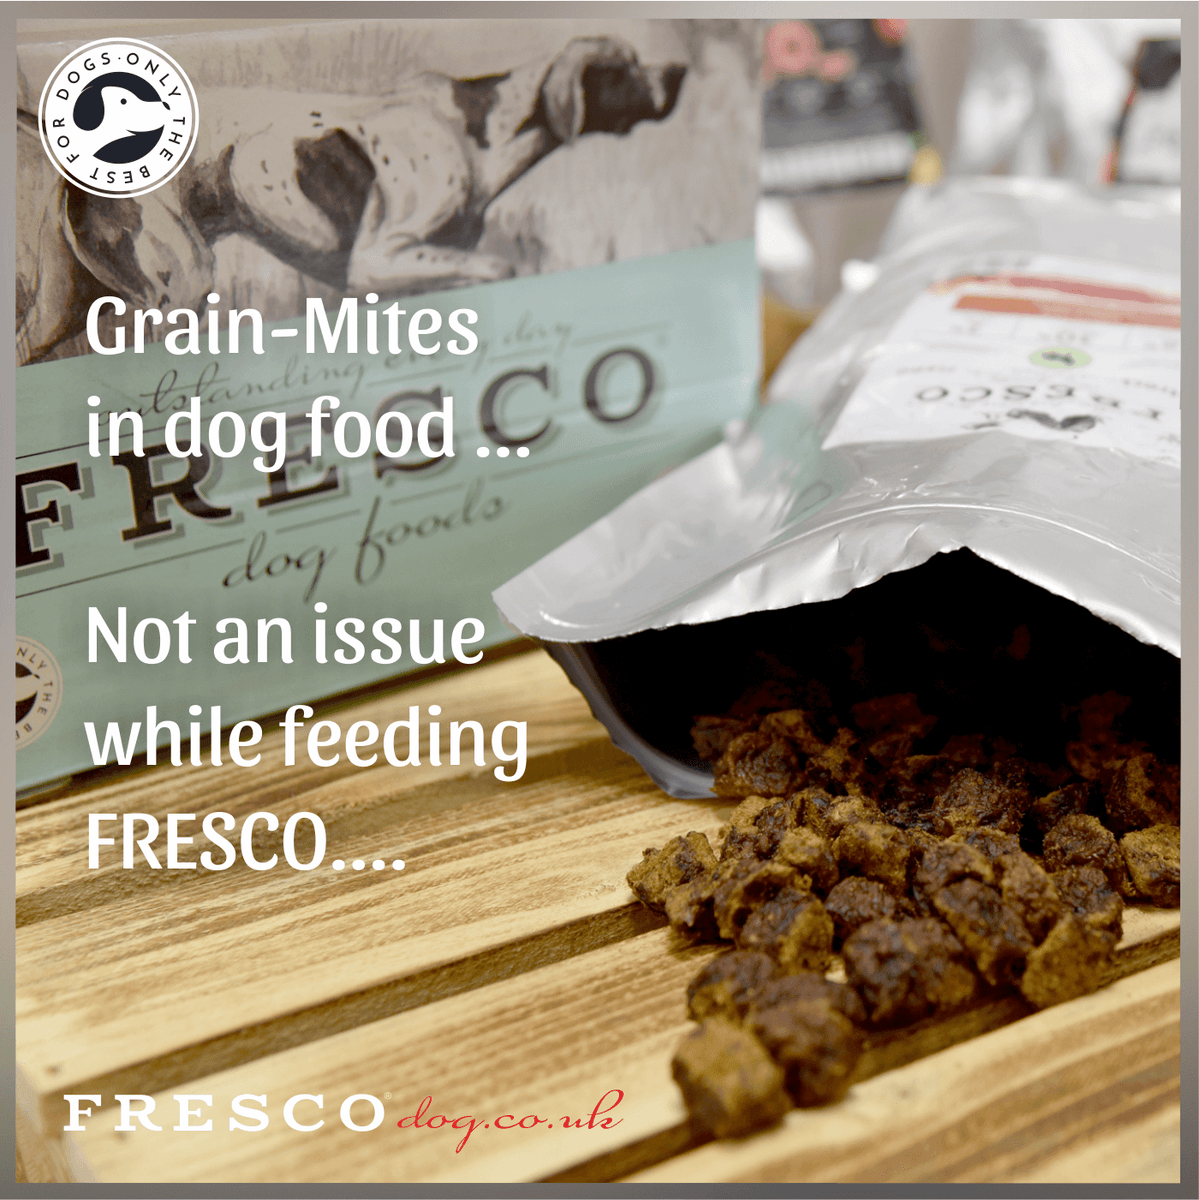 Grain-Mites in your dog food? Not an issue while feeding FRESCO!